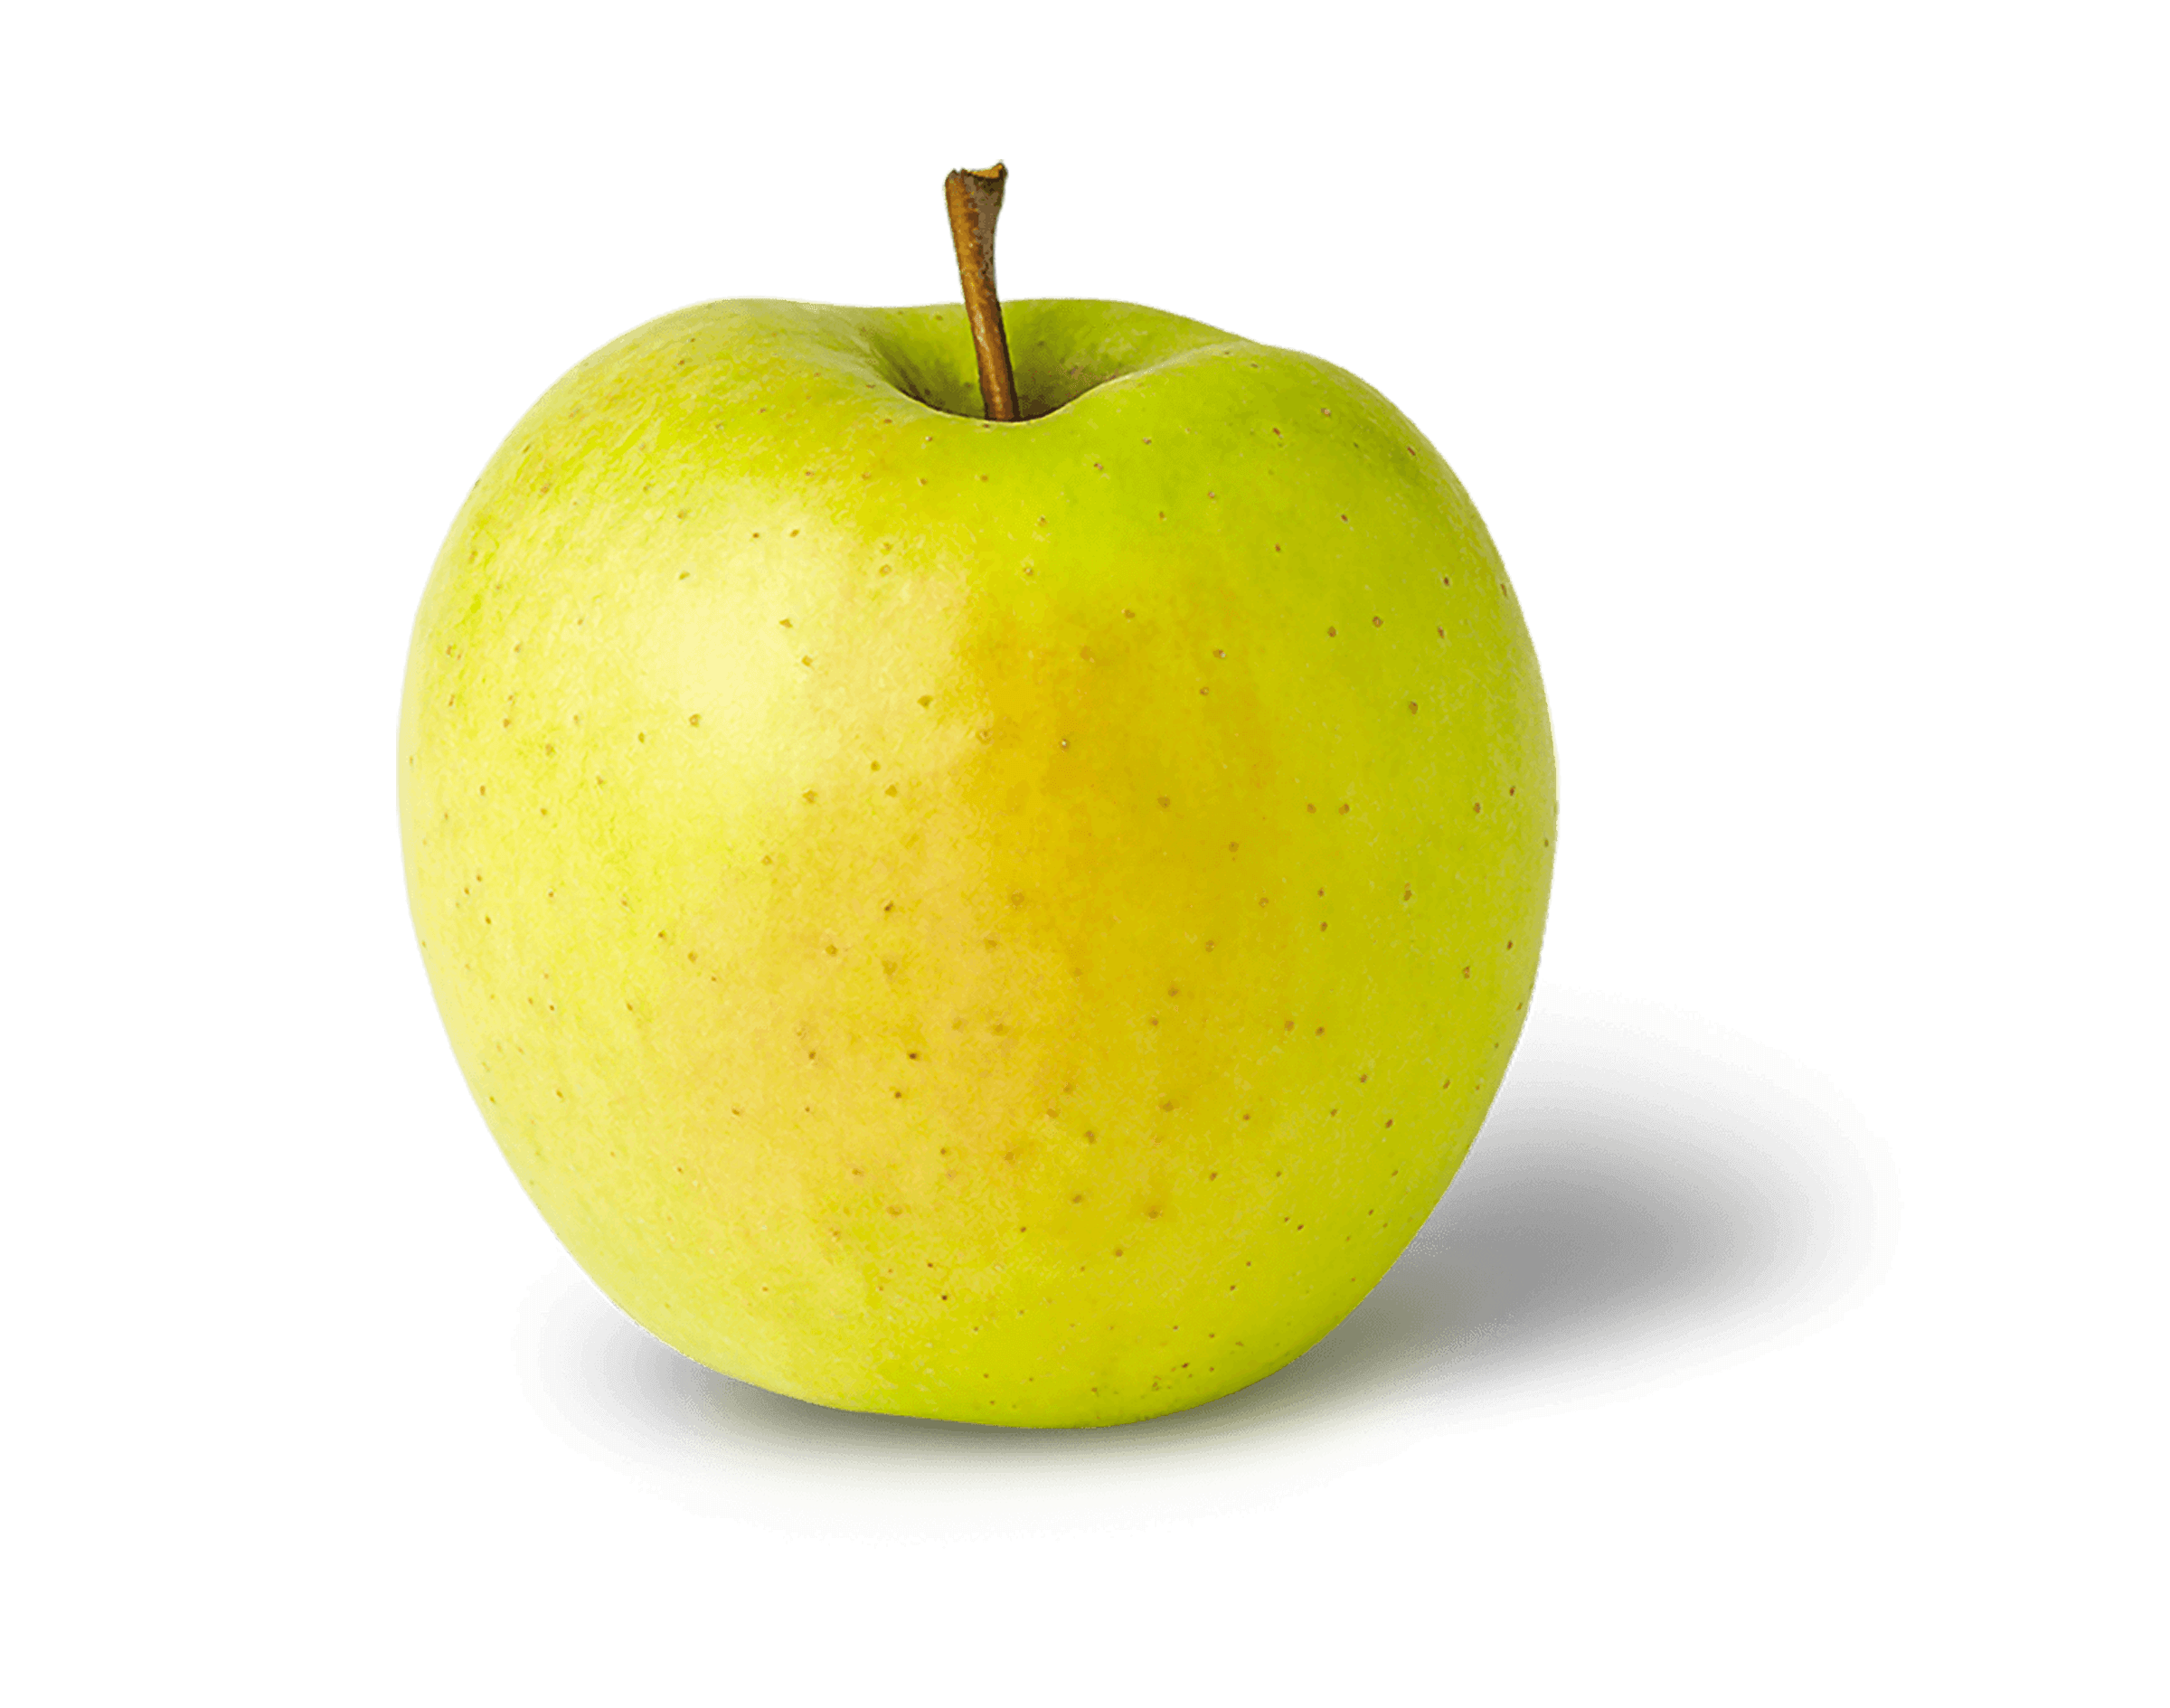 Apple Photo - Golden Delicious